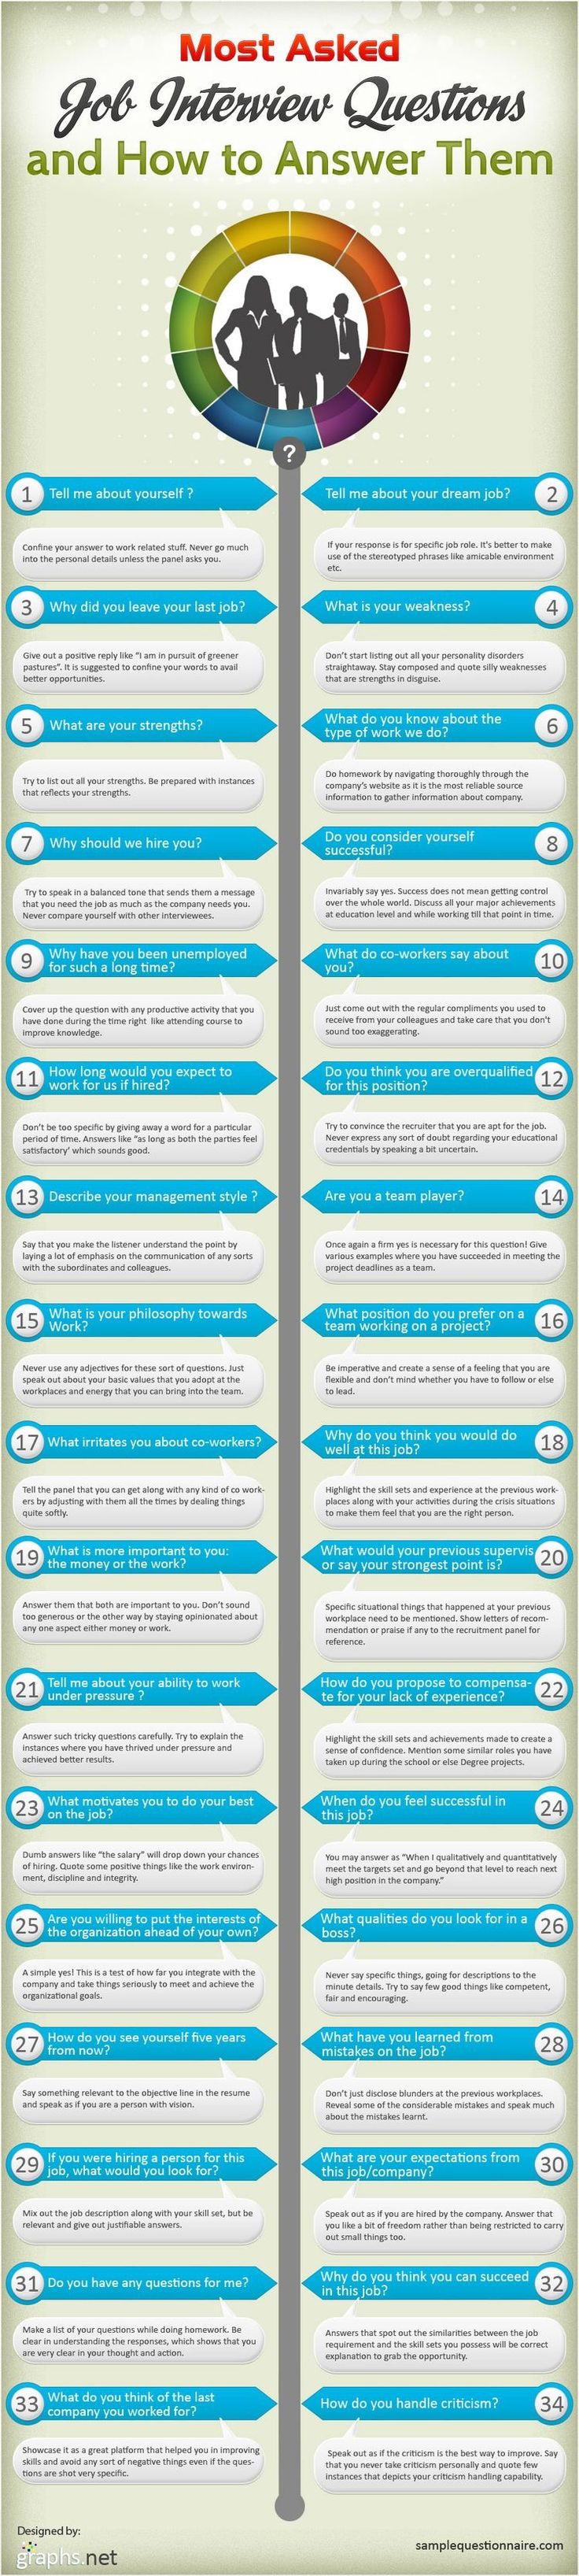 Interview questions and how to answer them